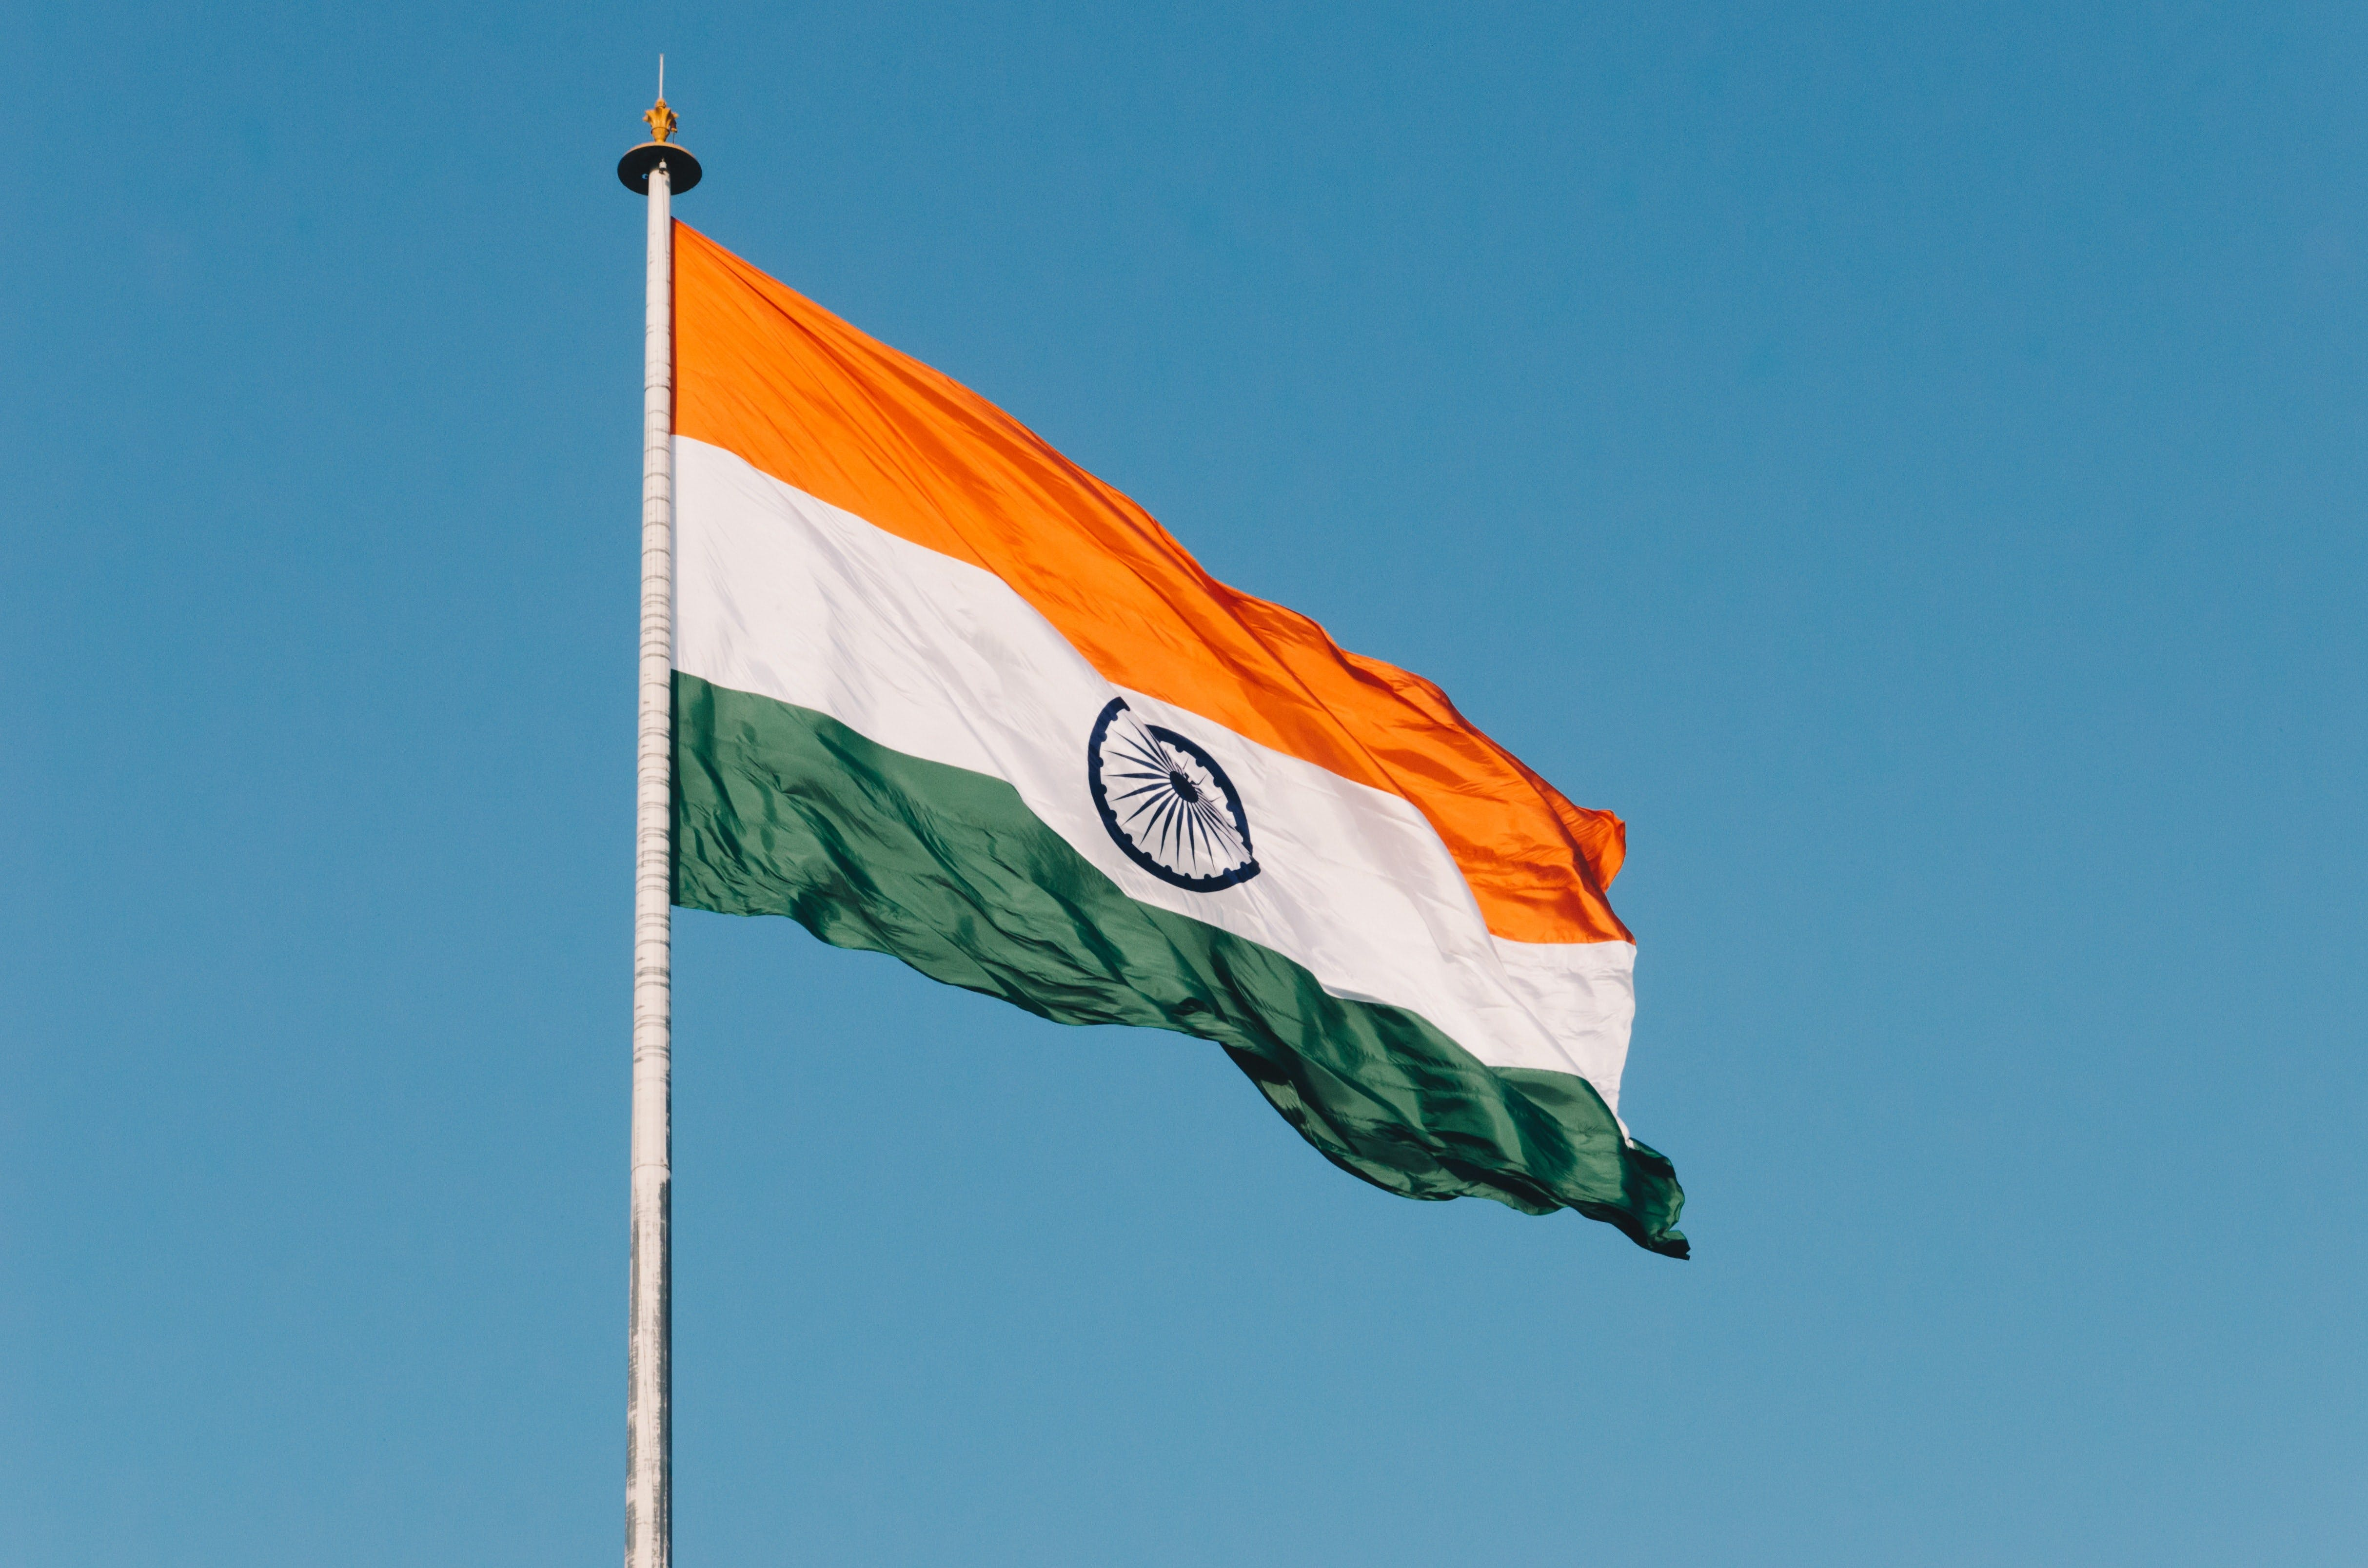 Indian Law Commision recommends full legalisation of gambling in India under regulation